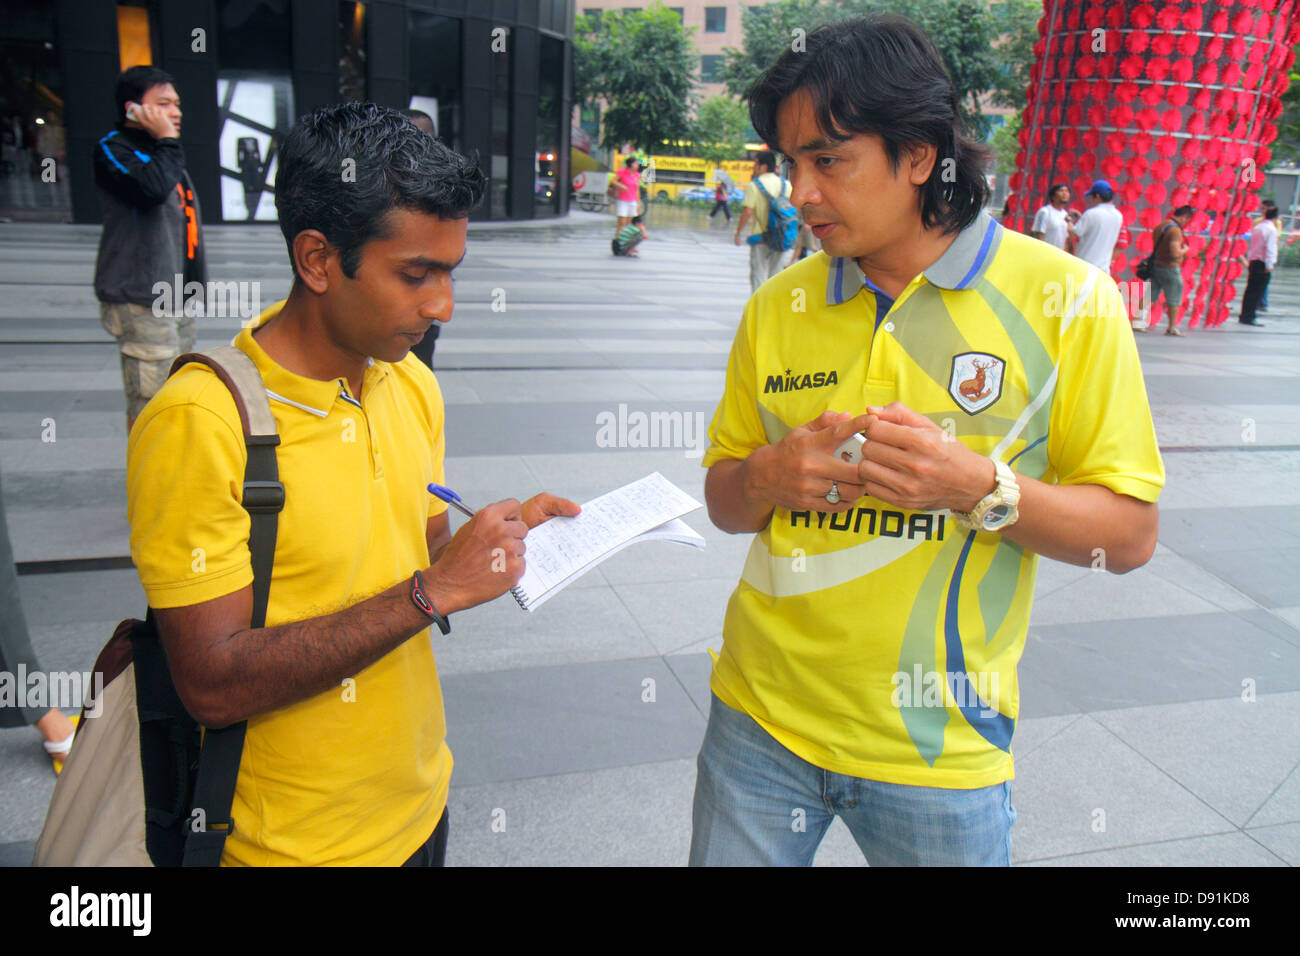 Singapore Orchard Road Asian reporter interview interviewing writing taking notes Grand Prix promotion driver Spanish - Stock Image